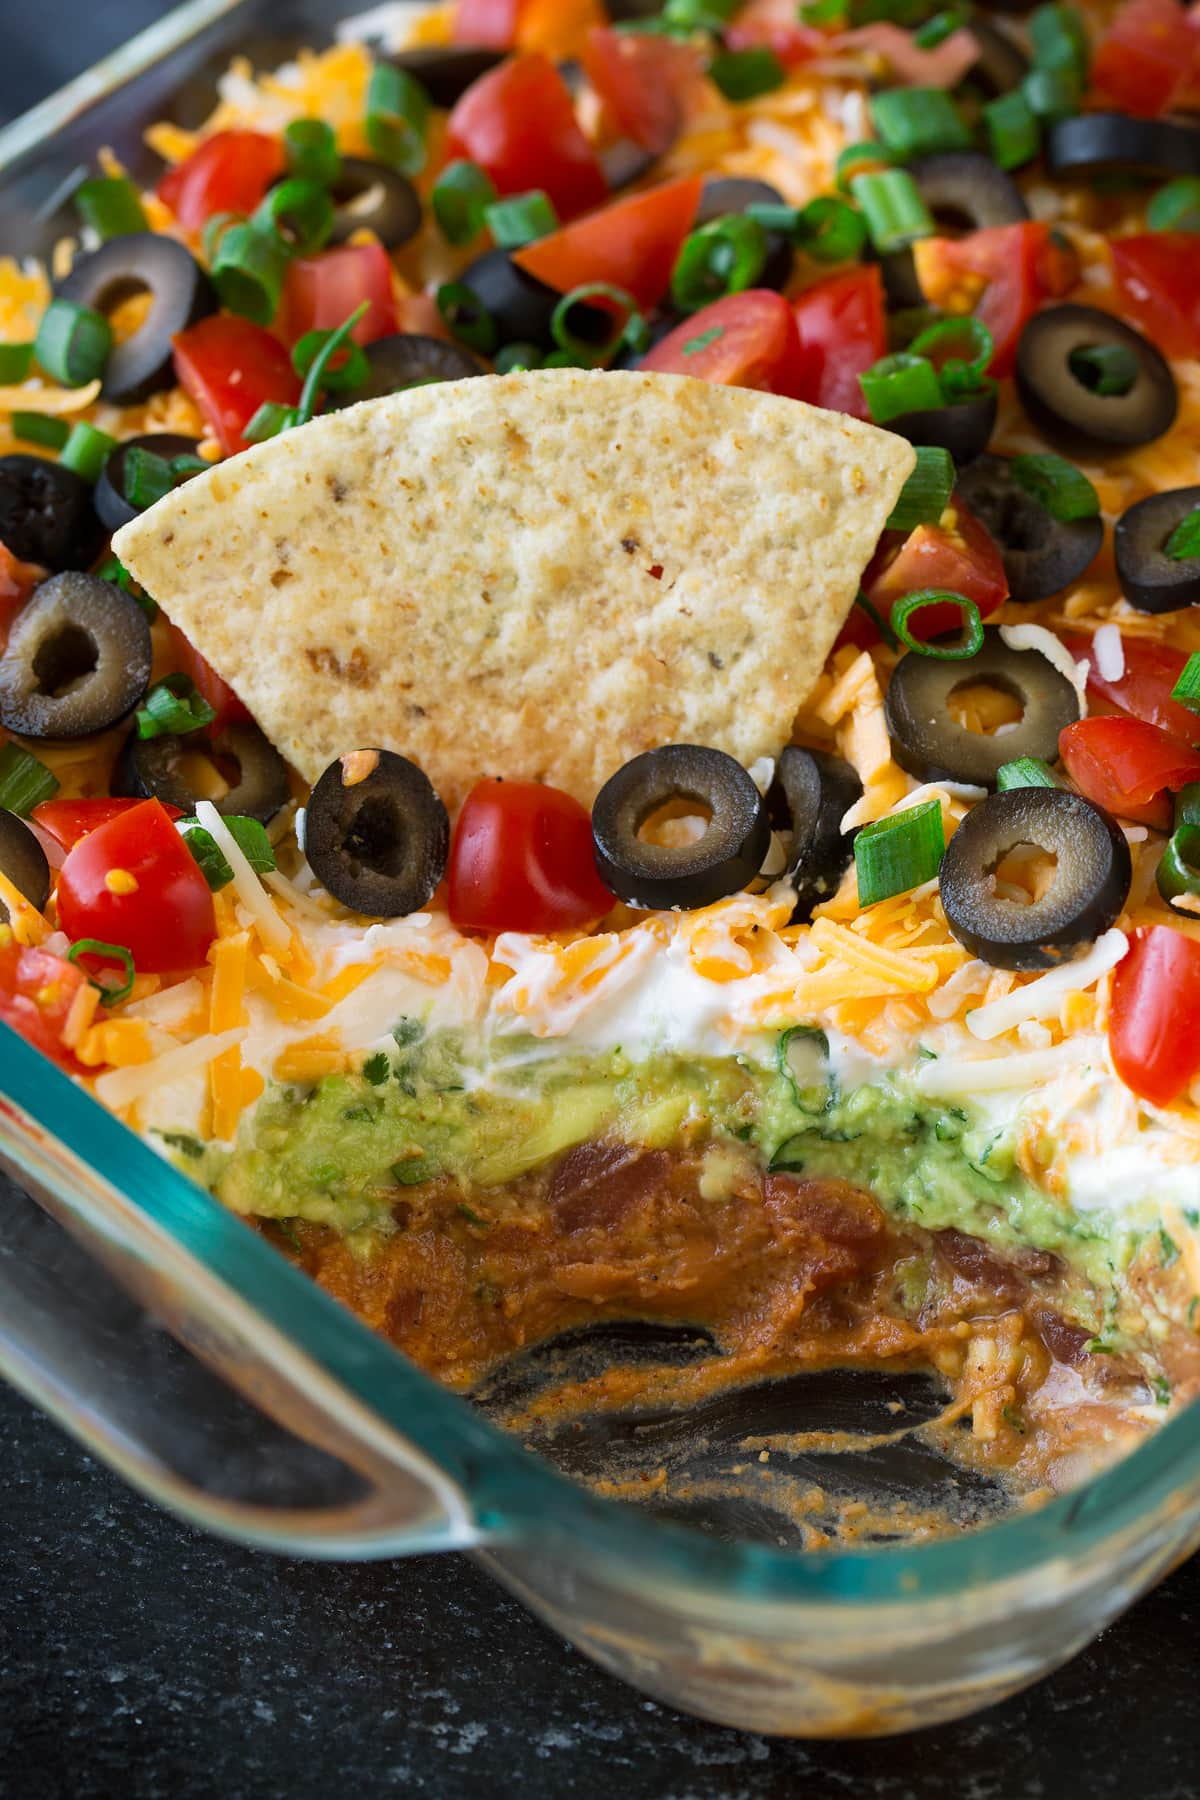 7 Layer Dip showing layer so of refried beans, guacamole, sour cream, cheese, olives, tomatoes and green onions.